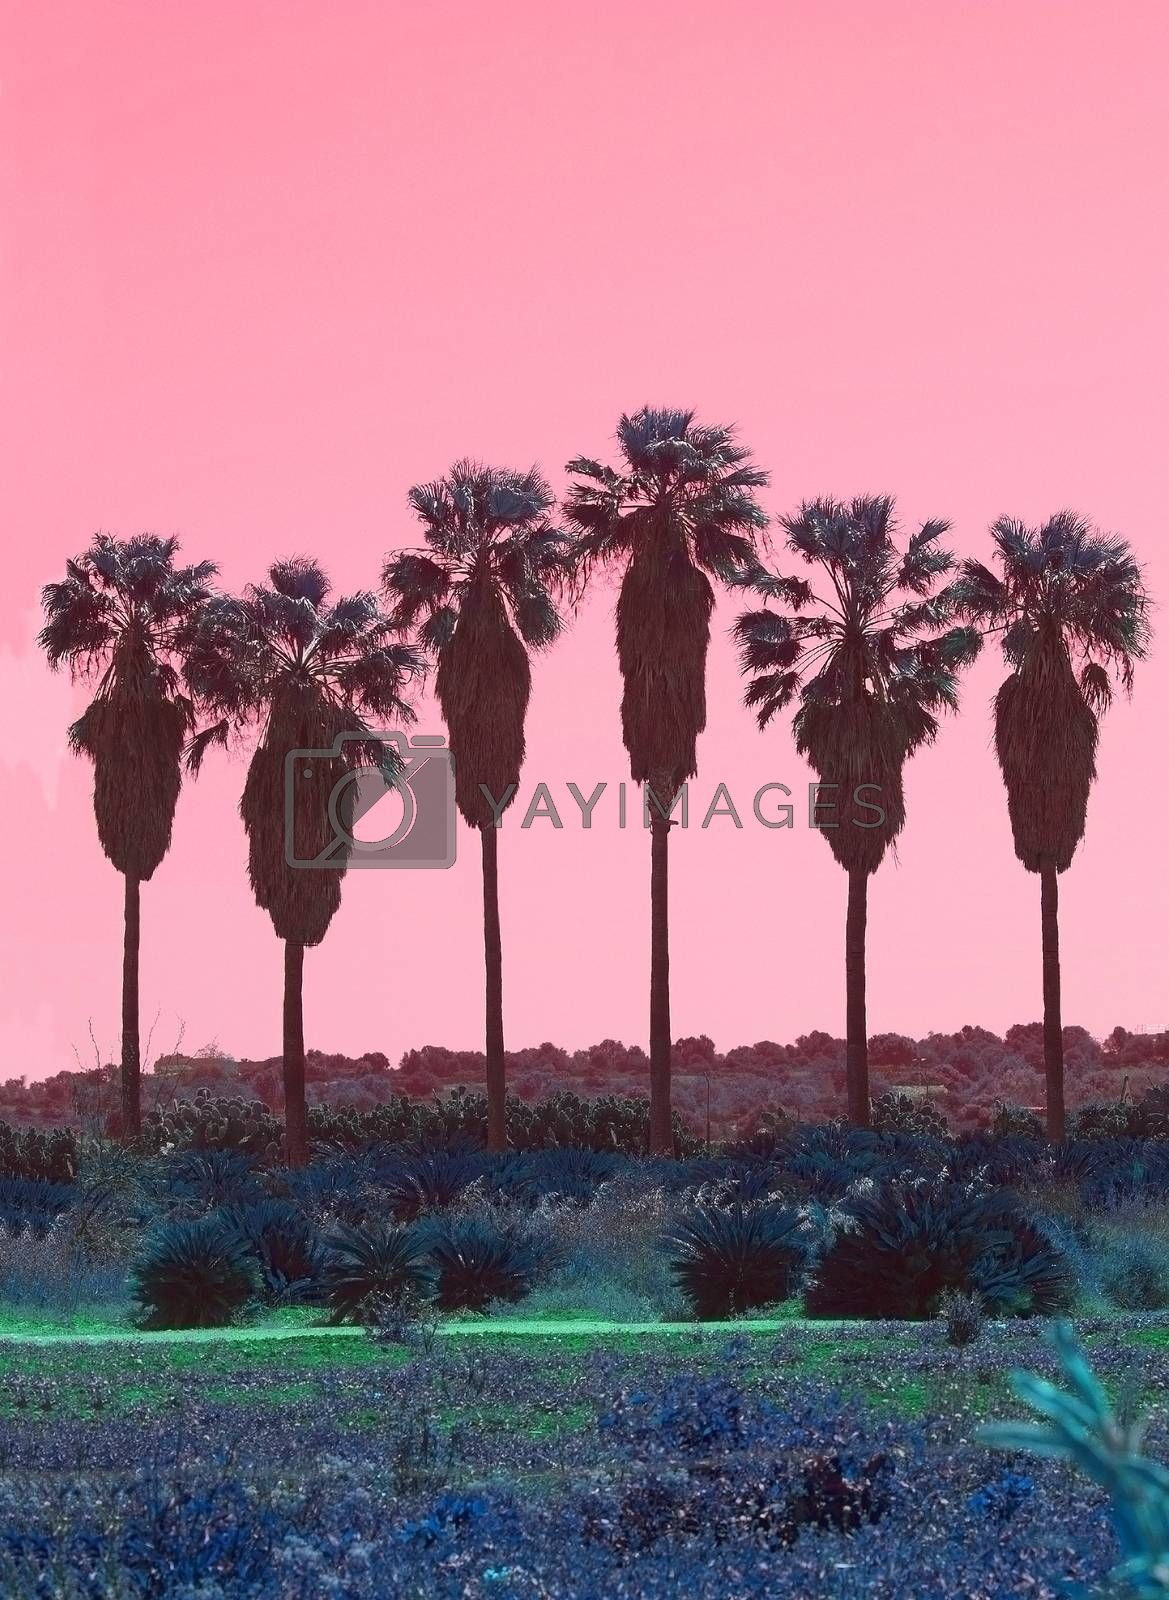 Palm trees in a row with high trunks abstract surrealistic pink and green color scheme